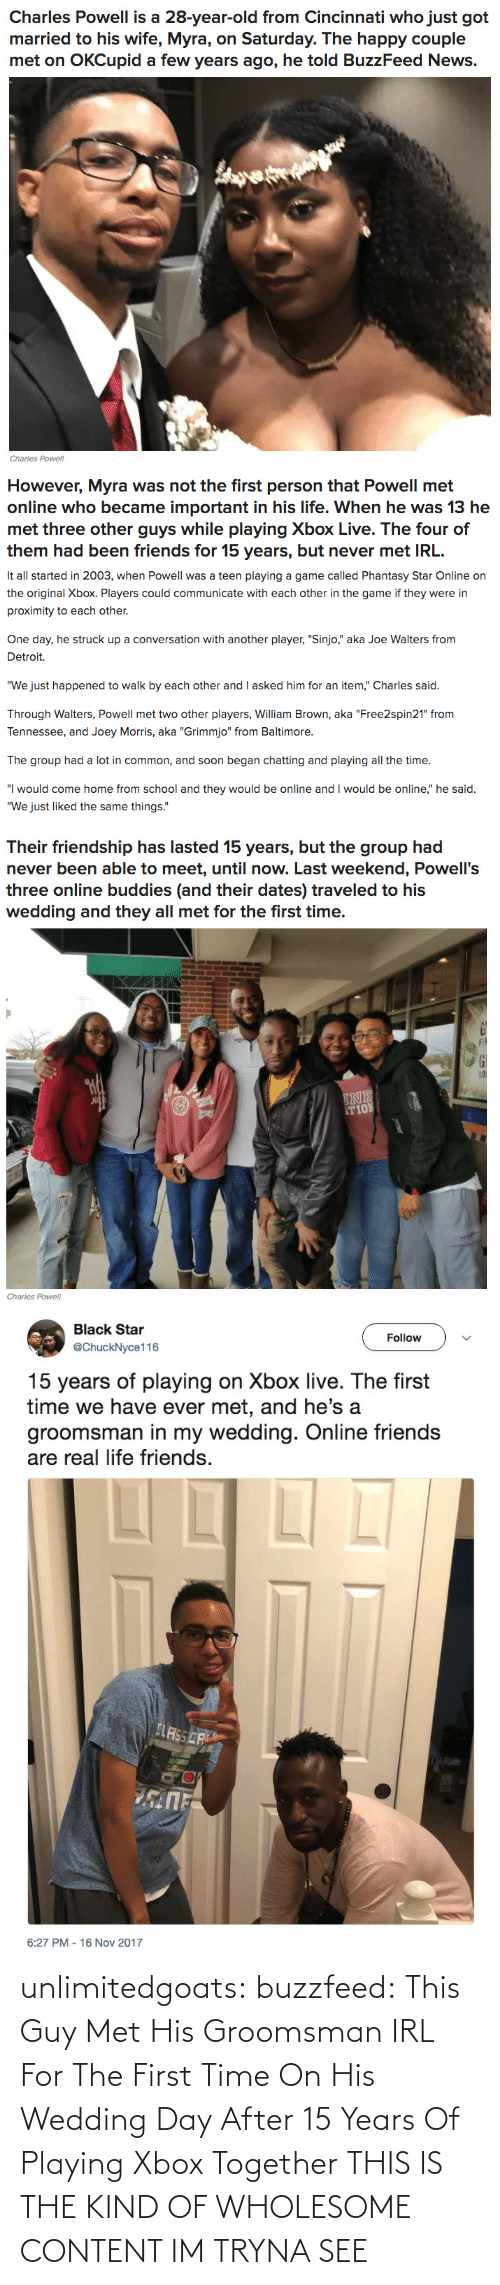 Buzzfeed: unlimitedgoats:  buzzfeed: This Guy Met His Groomsman IRL For The First Time On His Wedding Day After 15 Years Of Playing Xbox Together THIS IS THE KIND OF WHOLESOME CONTENT IM TRYNA SEE